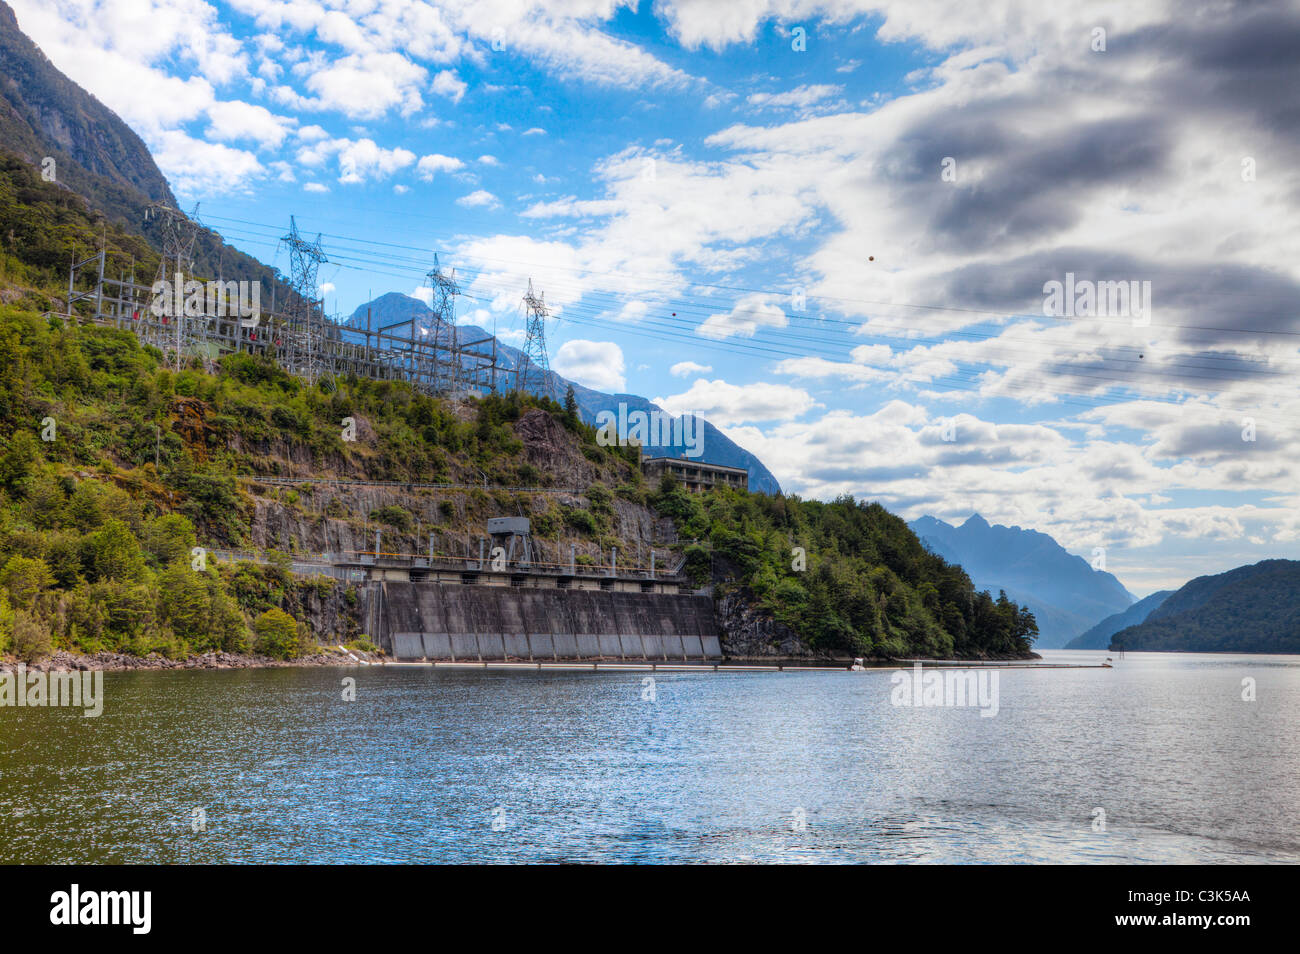 Manapouri hydroelectric power plant in New Zealand - Stock Image